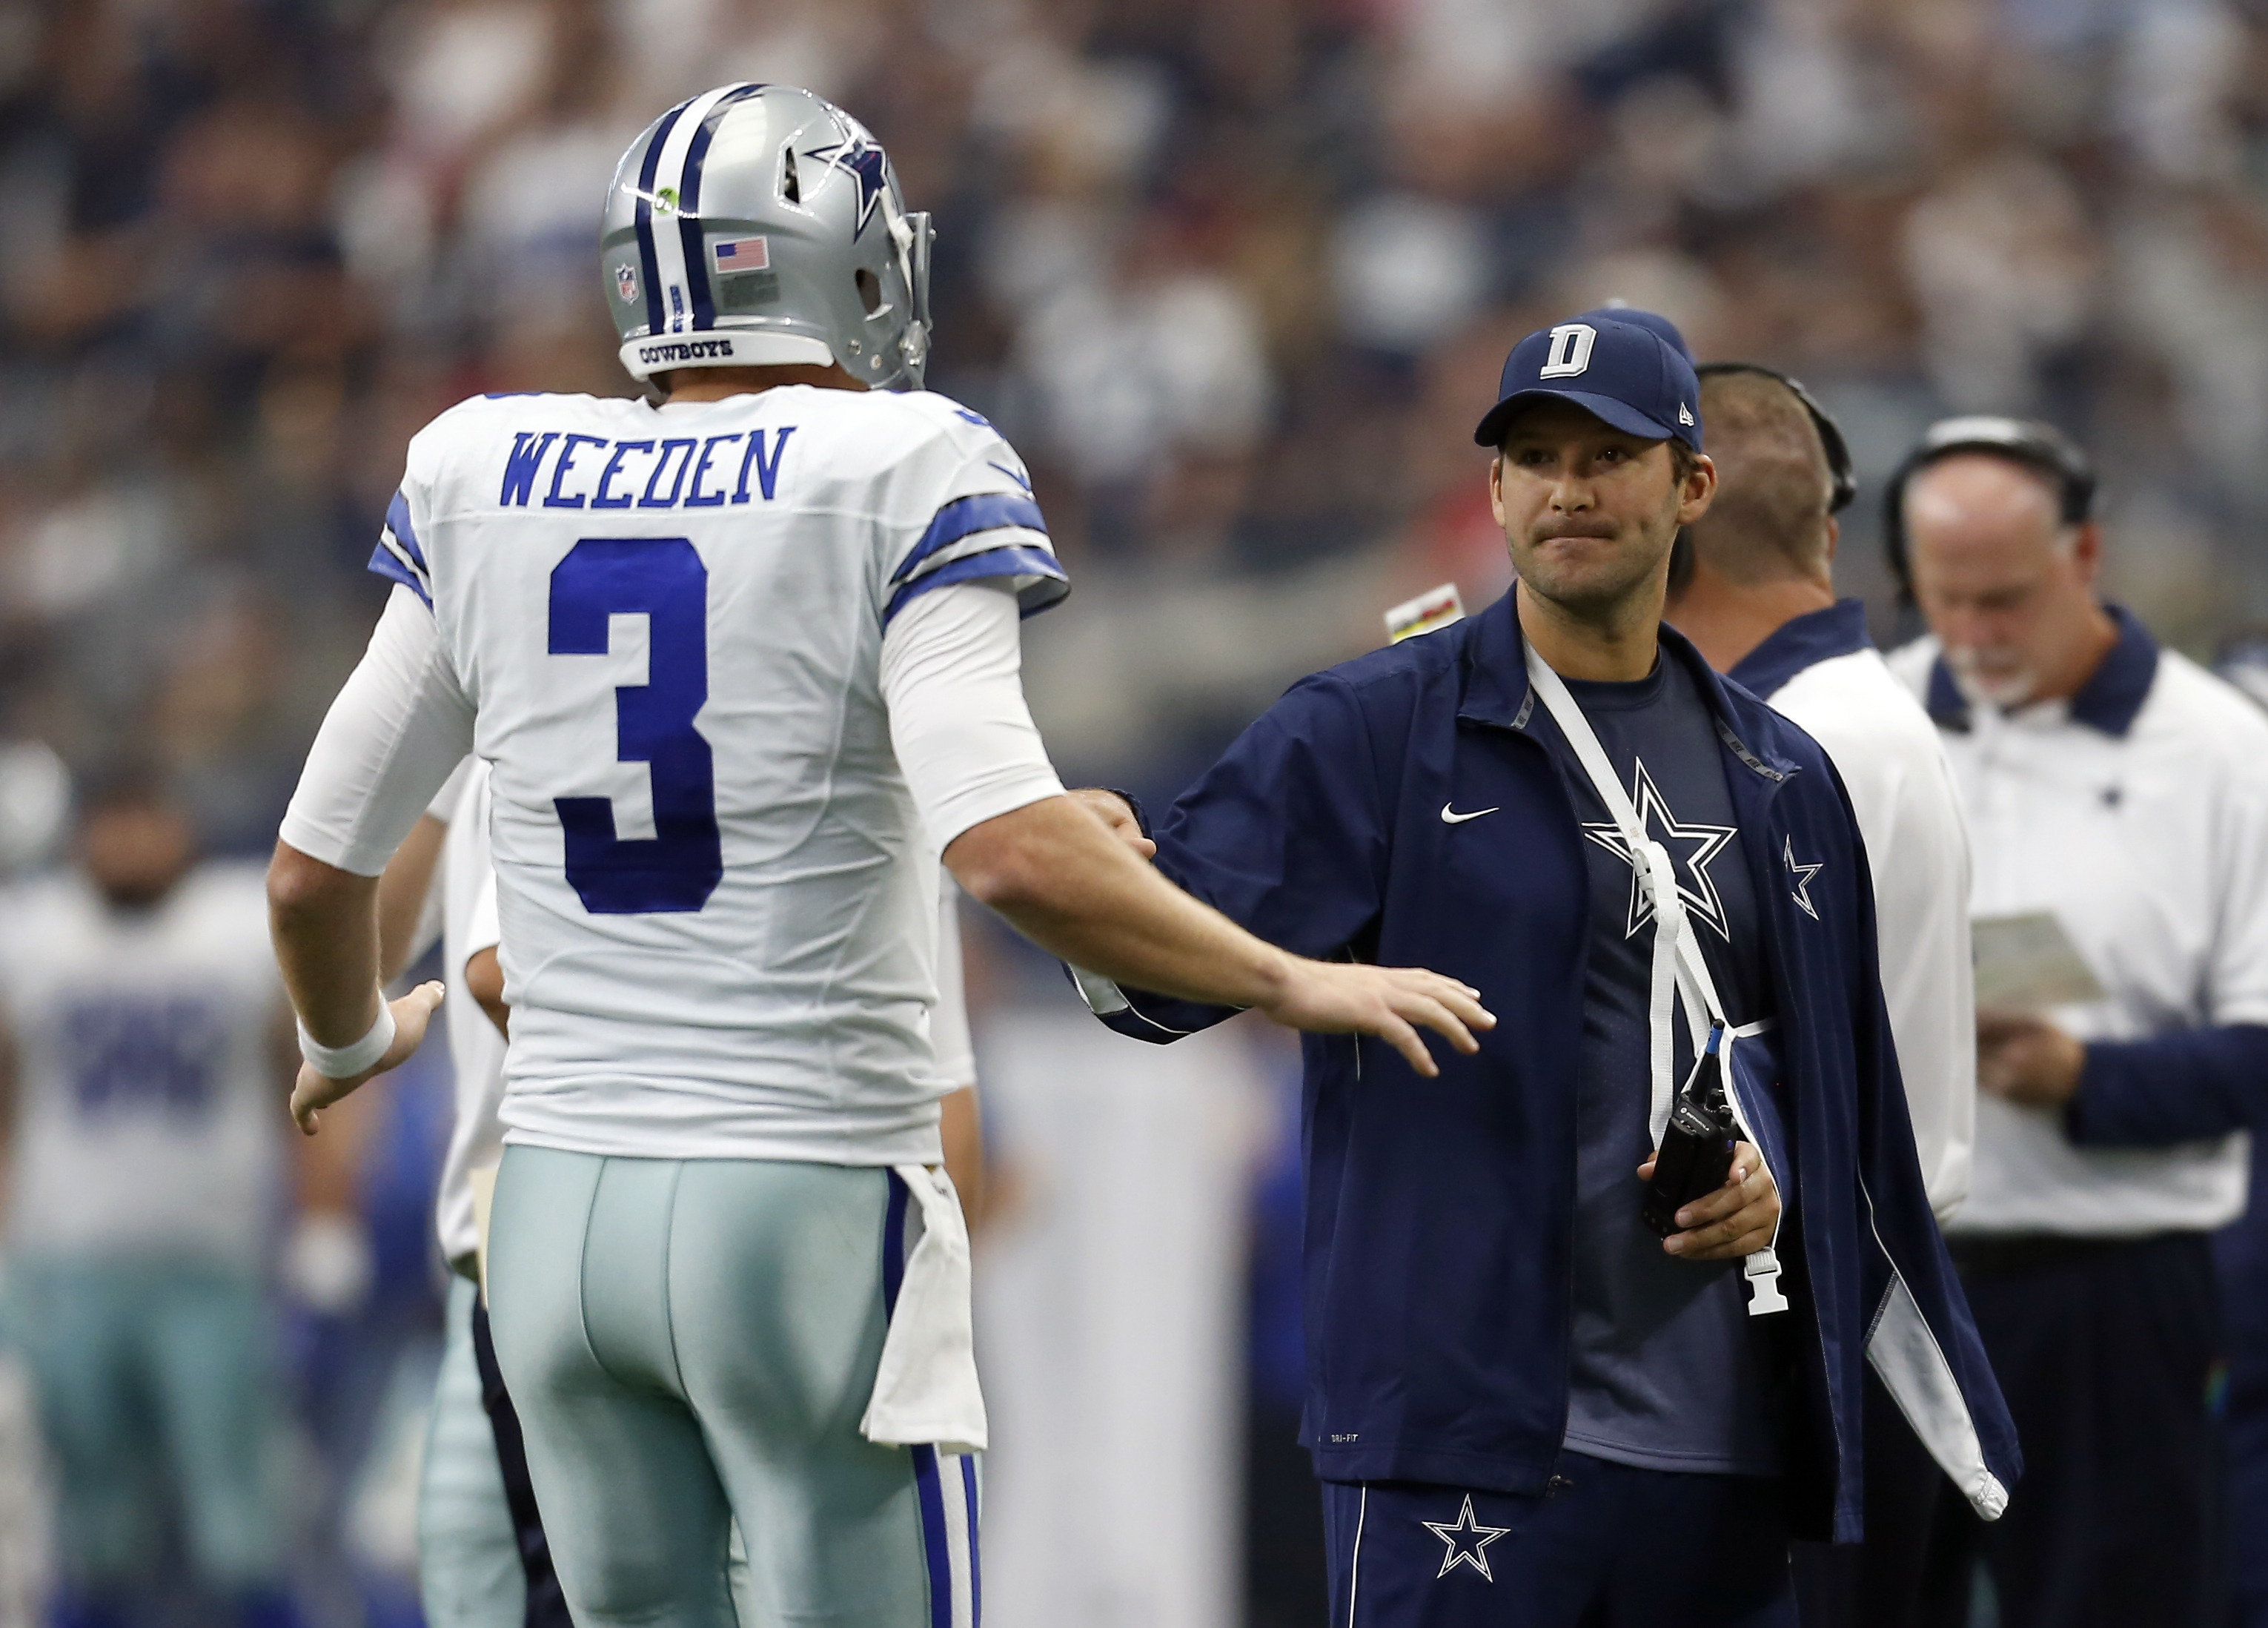 Dallas Cowboys quarterback Brandon Weeden (3) is greeted on the sideline by quarterback Tony Romo, right, in the first half of an NFL football game on Sunday, Sept. 27, 2015, in Arlington, Texas. (AP Photo/Brandon Wade)